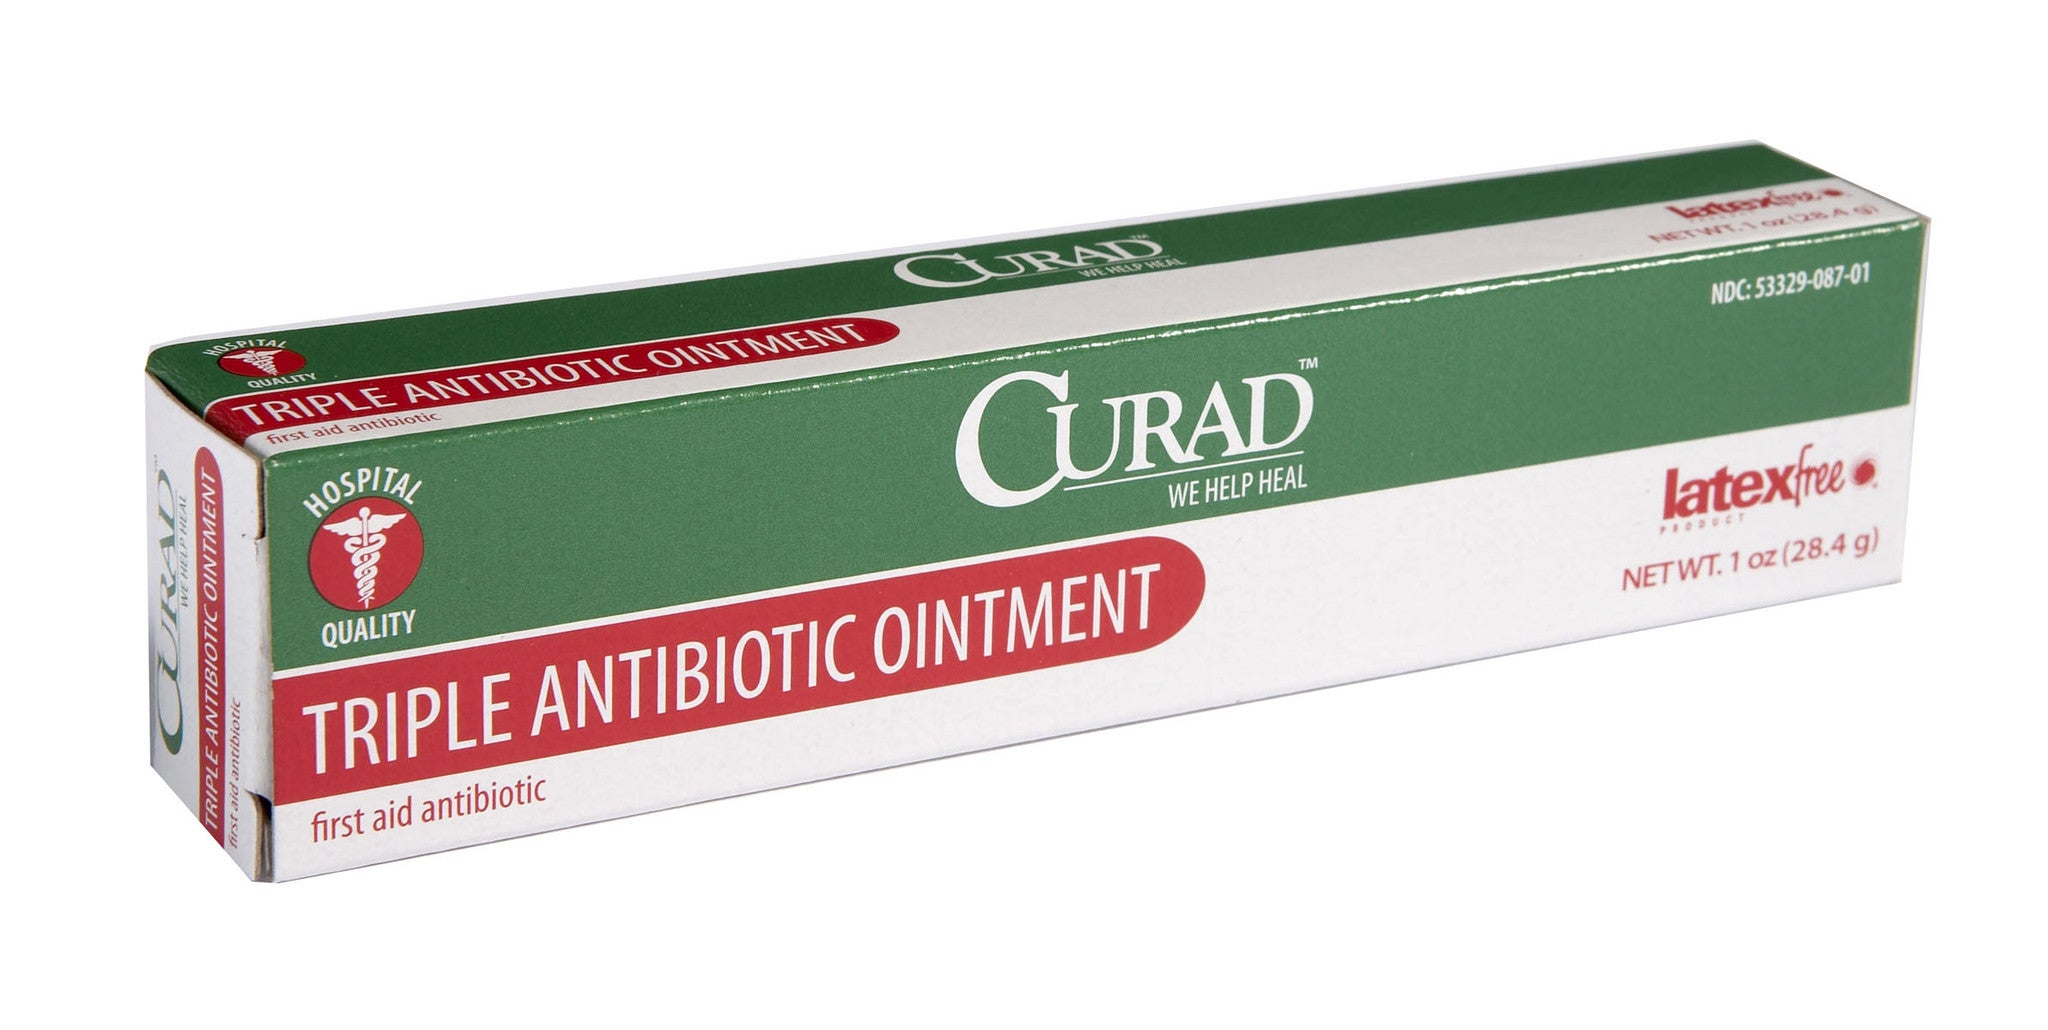 TRIPLE ANTIBIOTIC OIN, 1 OZ TUBE